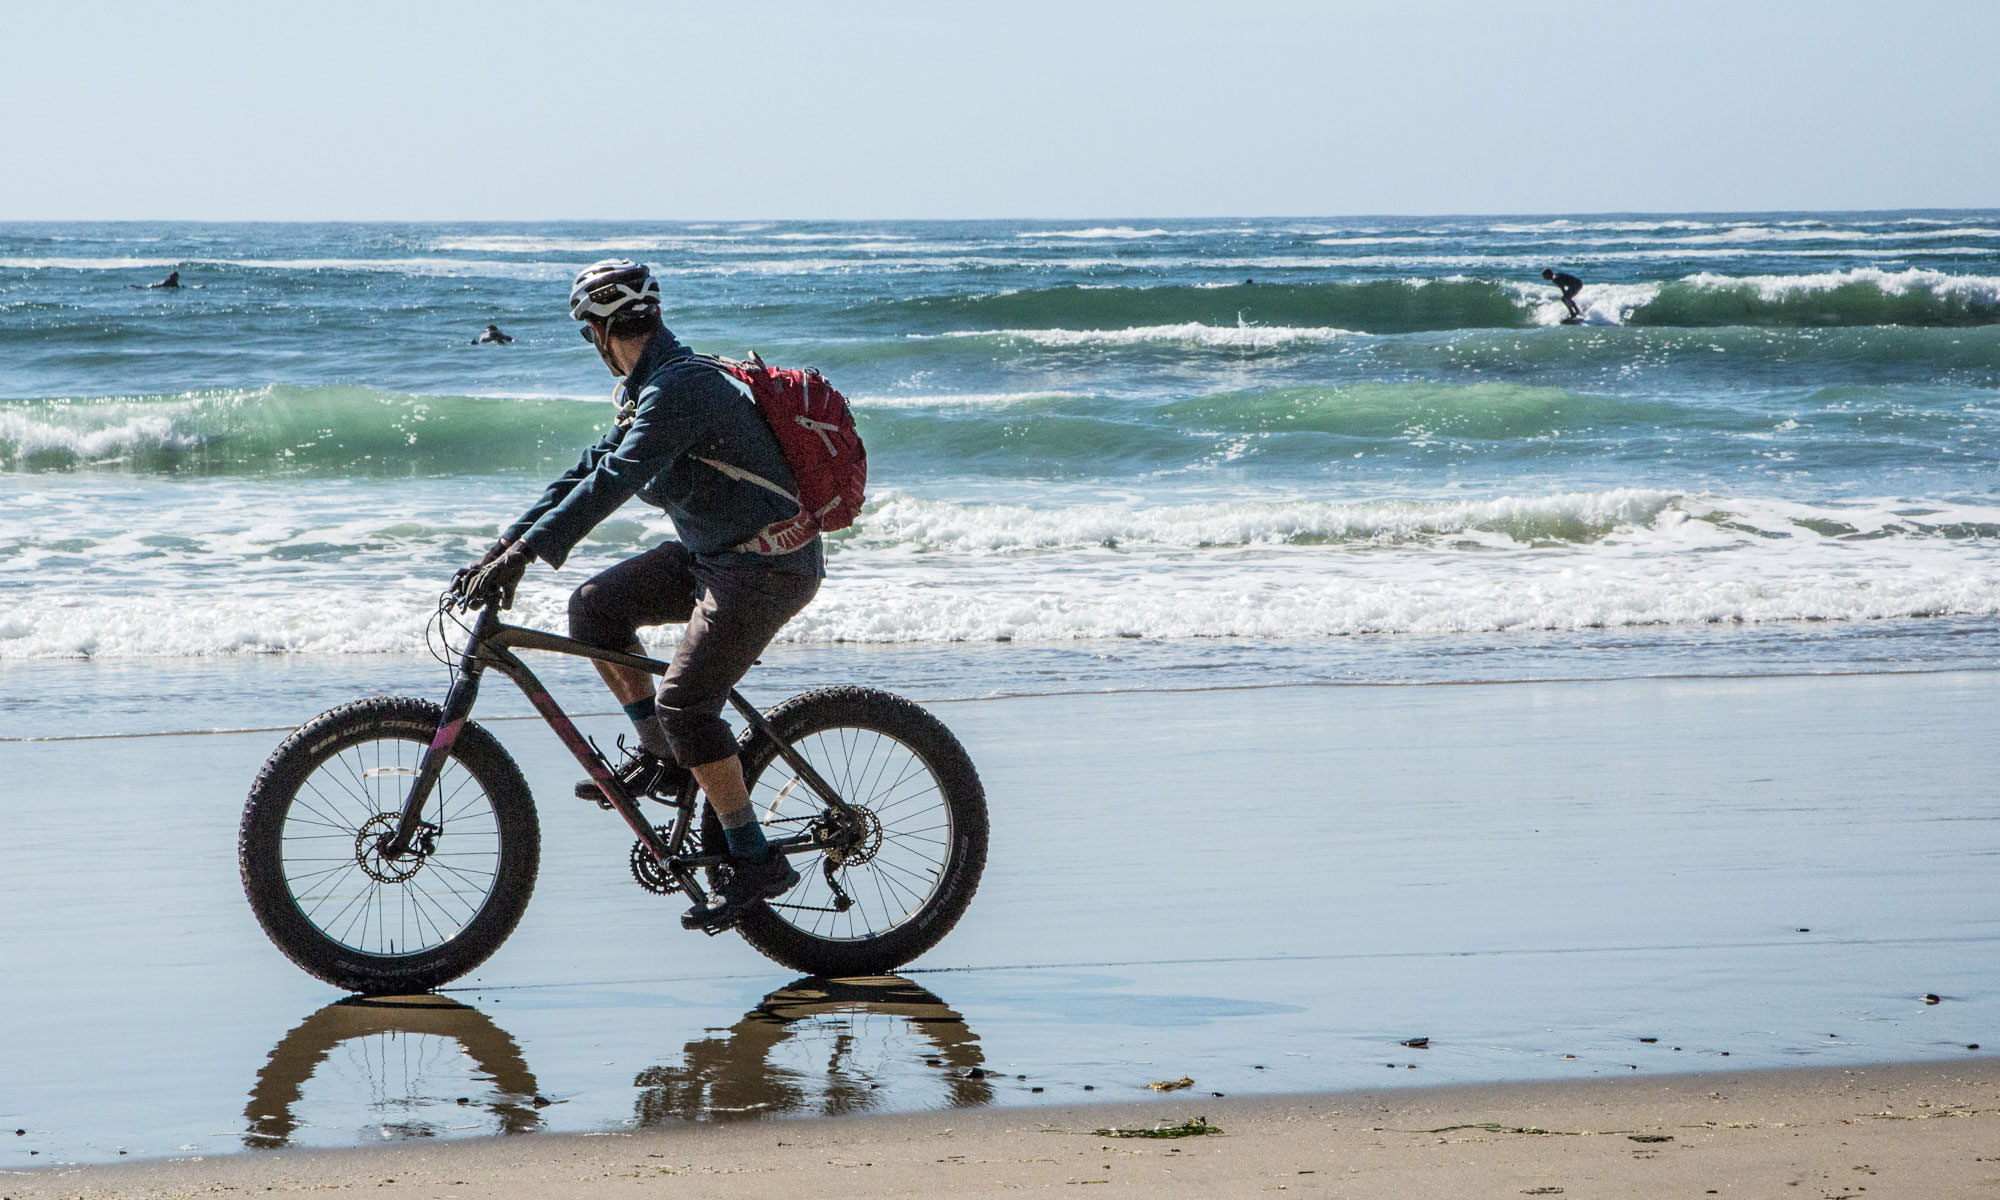 A man riding a fat bike on wet sand looks at the surfers catching waves.